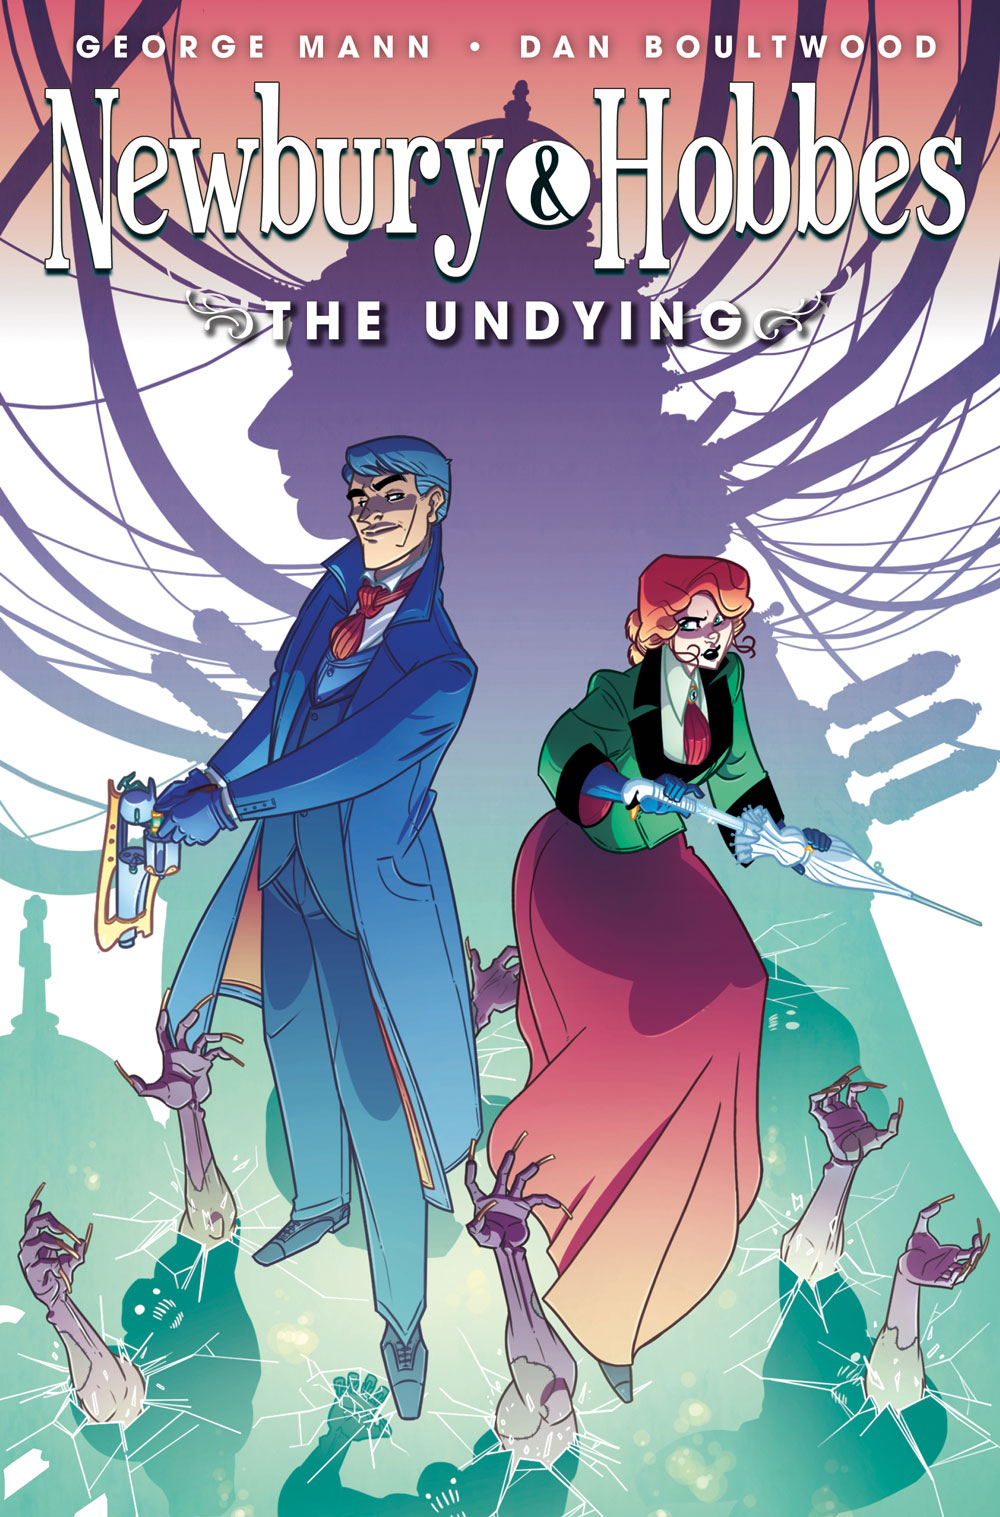 "<a href=""https://amzn.to/2MrOgH0"">Newbury & Hobbes: The Undying</a>"